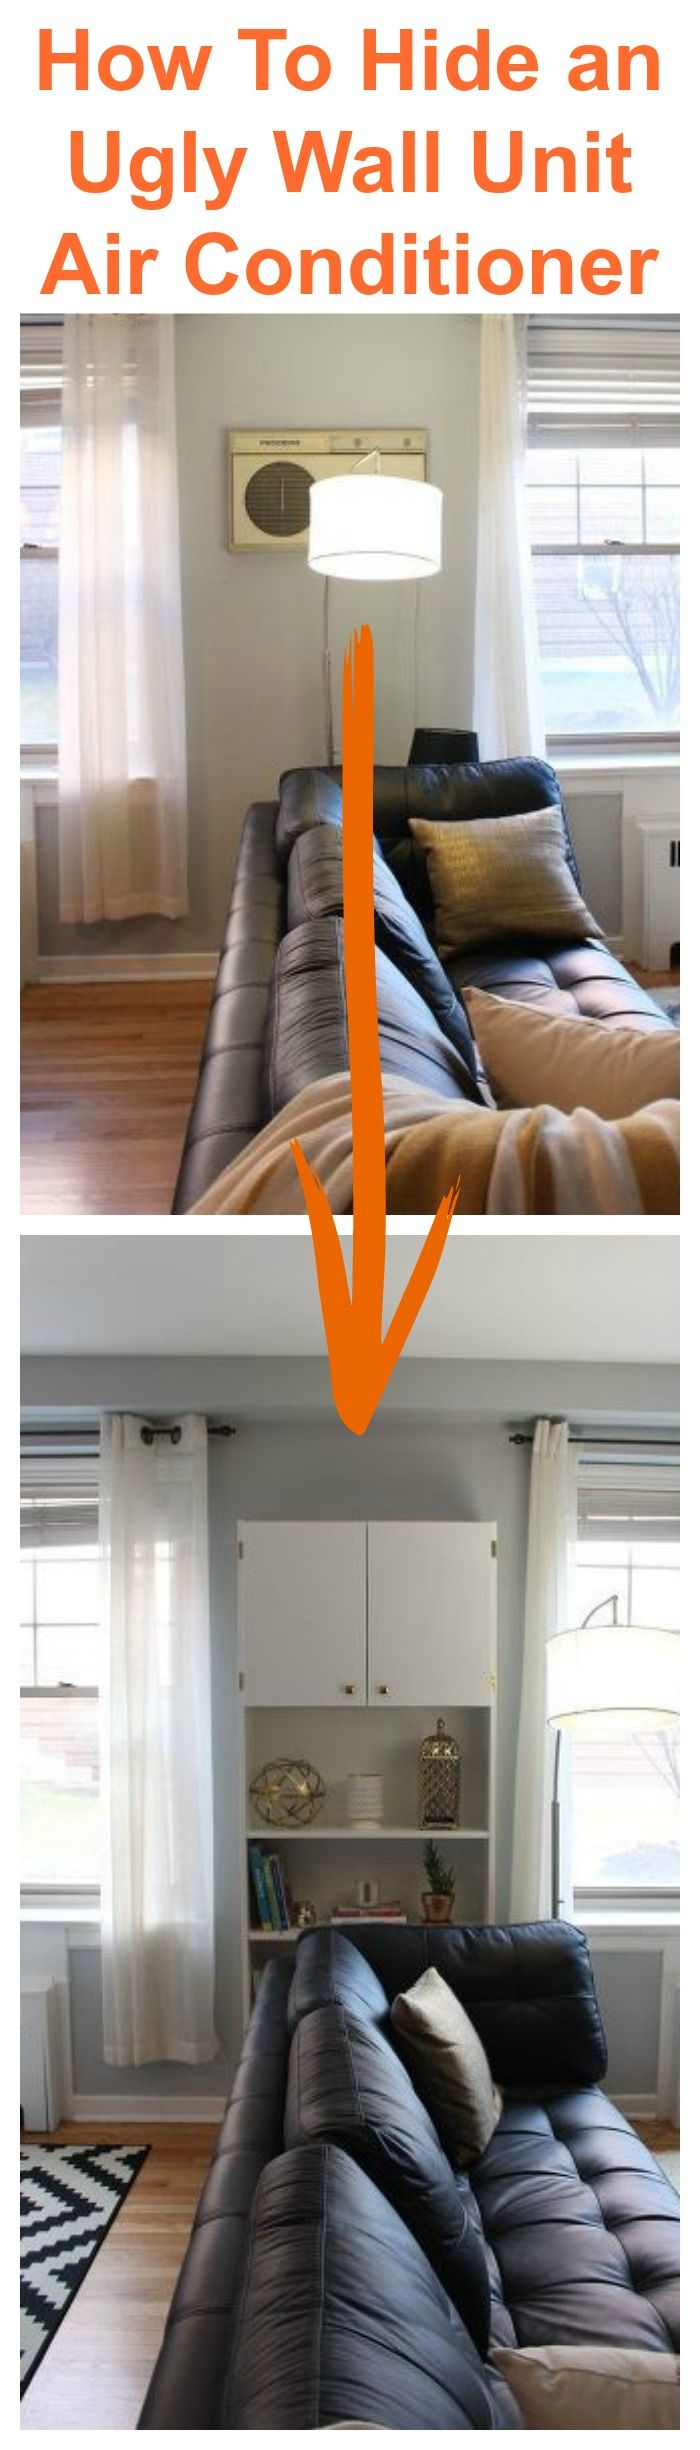 This is such a genius idea to hide an ugly wall unit air conditioner.